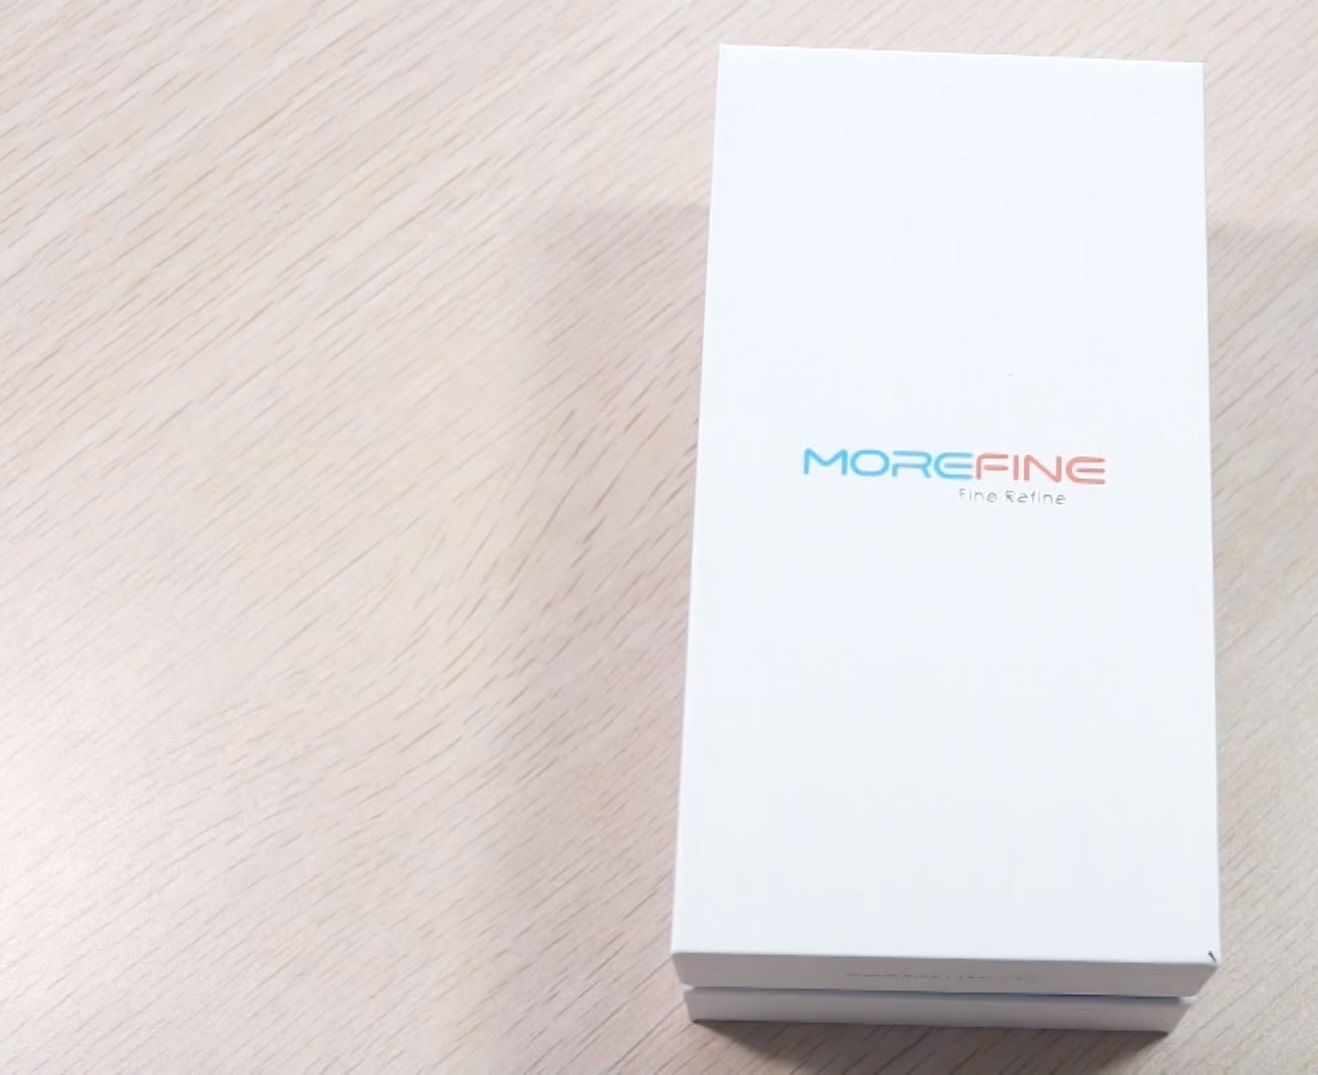 MOREFINE MAX1 Plain white box withe the logo on it sitting on table